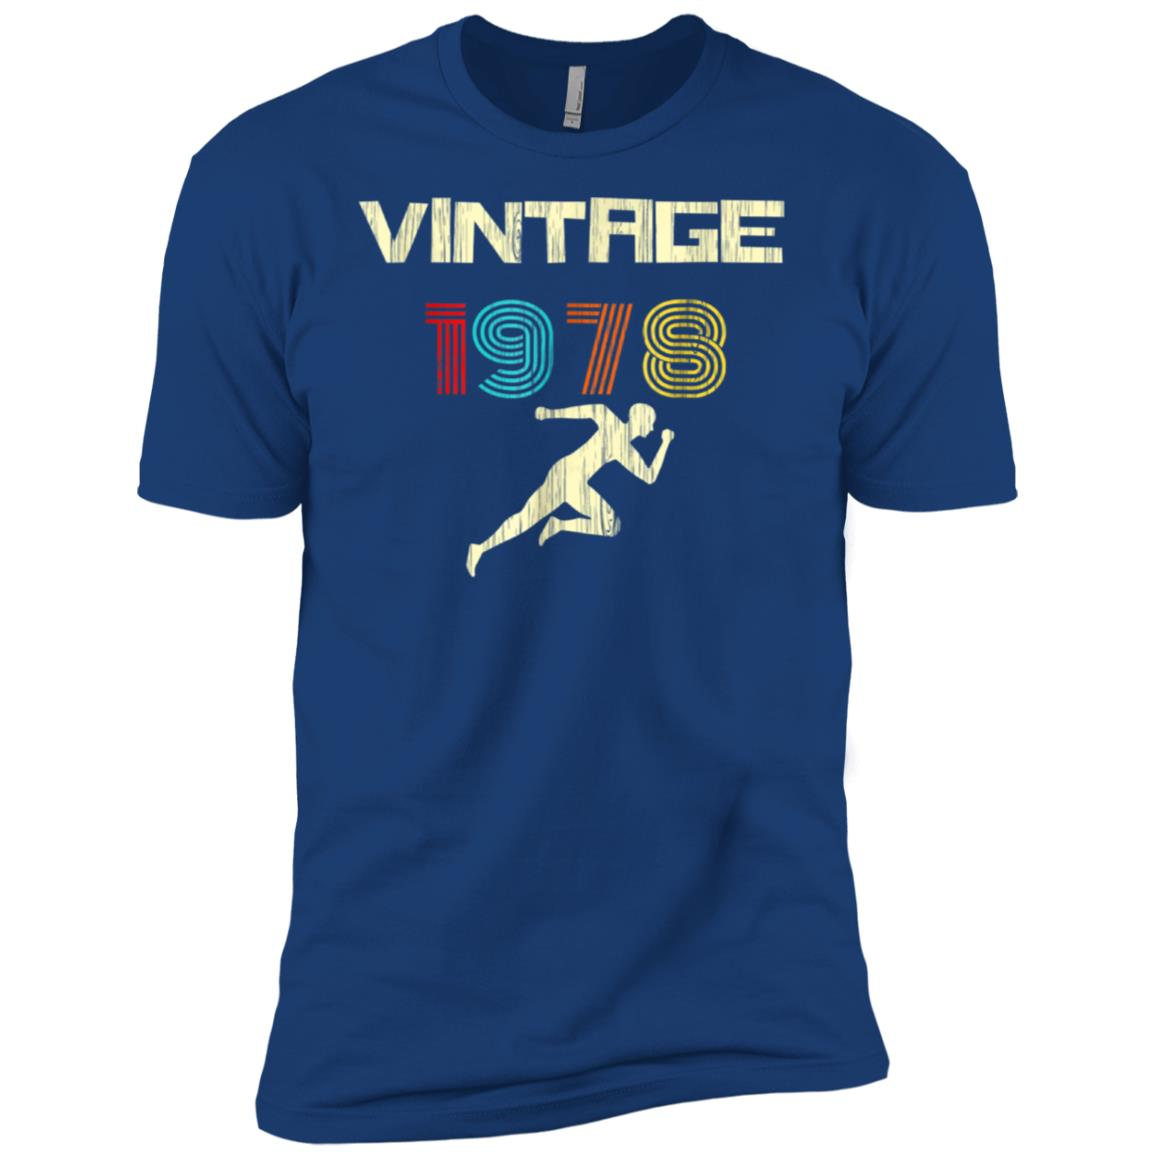 Runner's Vintage 1978 40th Birthday Men Short Sleeve T-Shirt